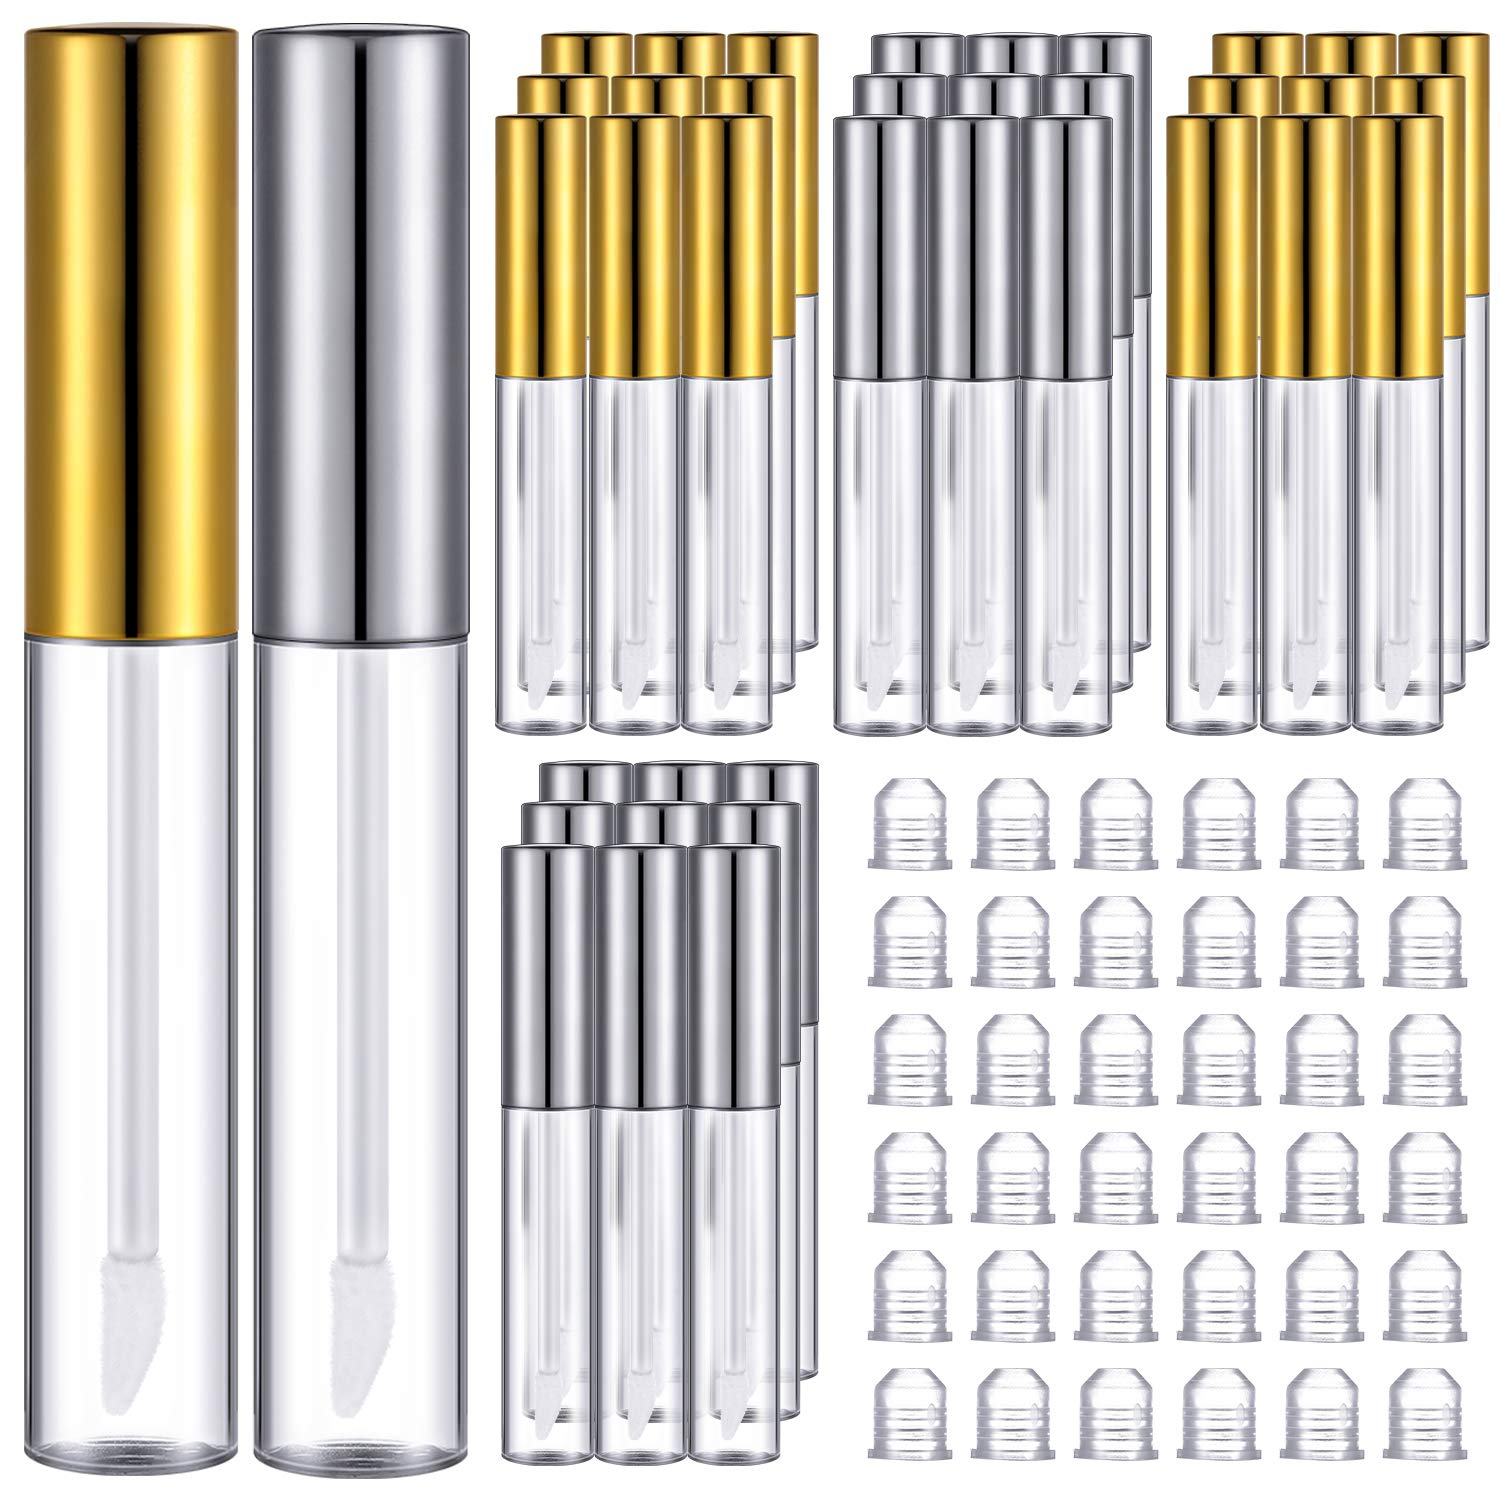 36 Pieces Lip Gloss Tubes with Wand 10 ml 0.34 oz Silver and Gold Empty Lip Gloss Containers Clear Lip Balm Bottle with Rubber Insert Reusable Dispenser Bottle for DIY Lipstick Cosmetic Sample